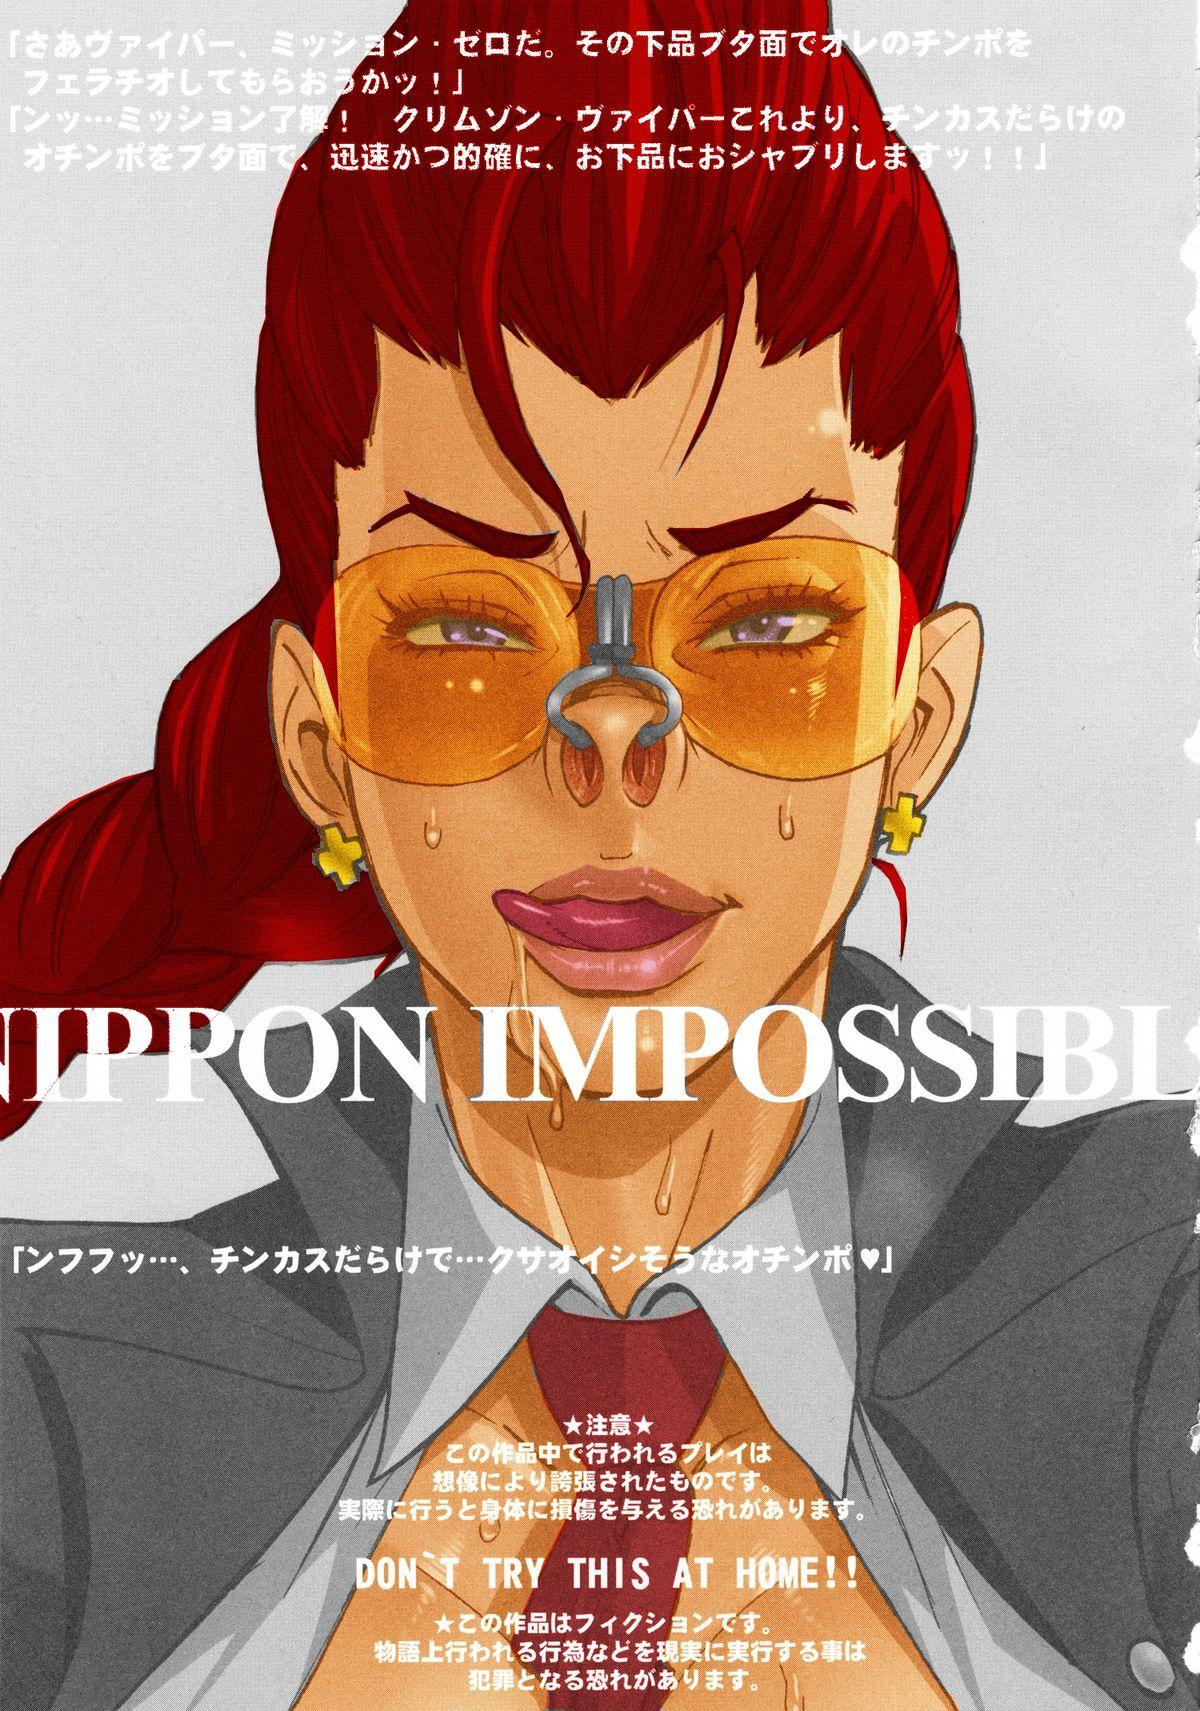 NIPPON IMPOSSIBLE 1